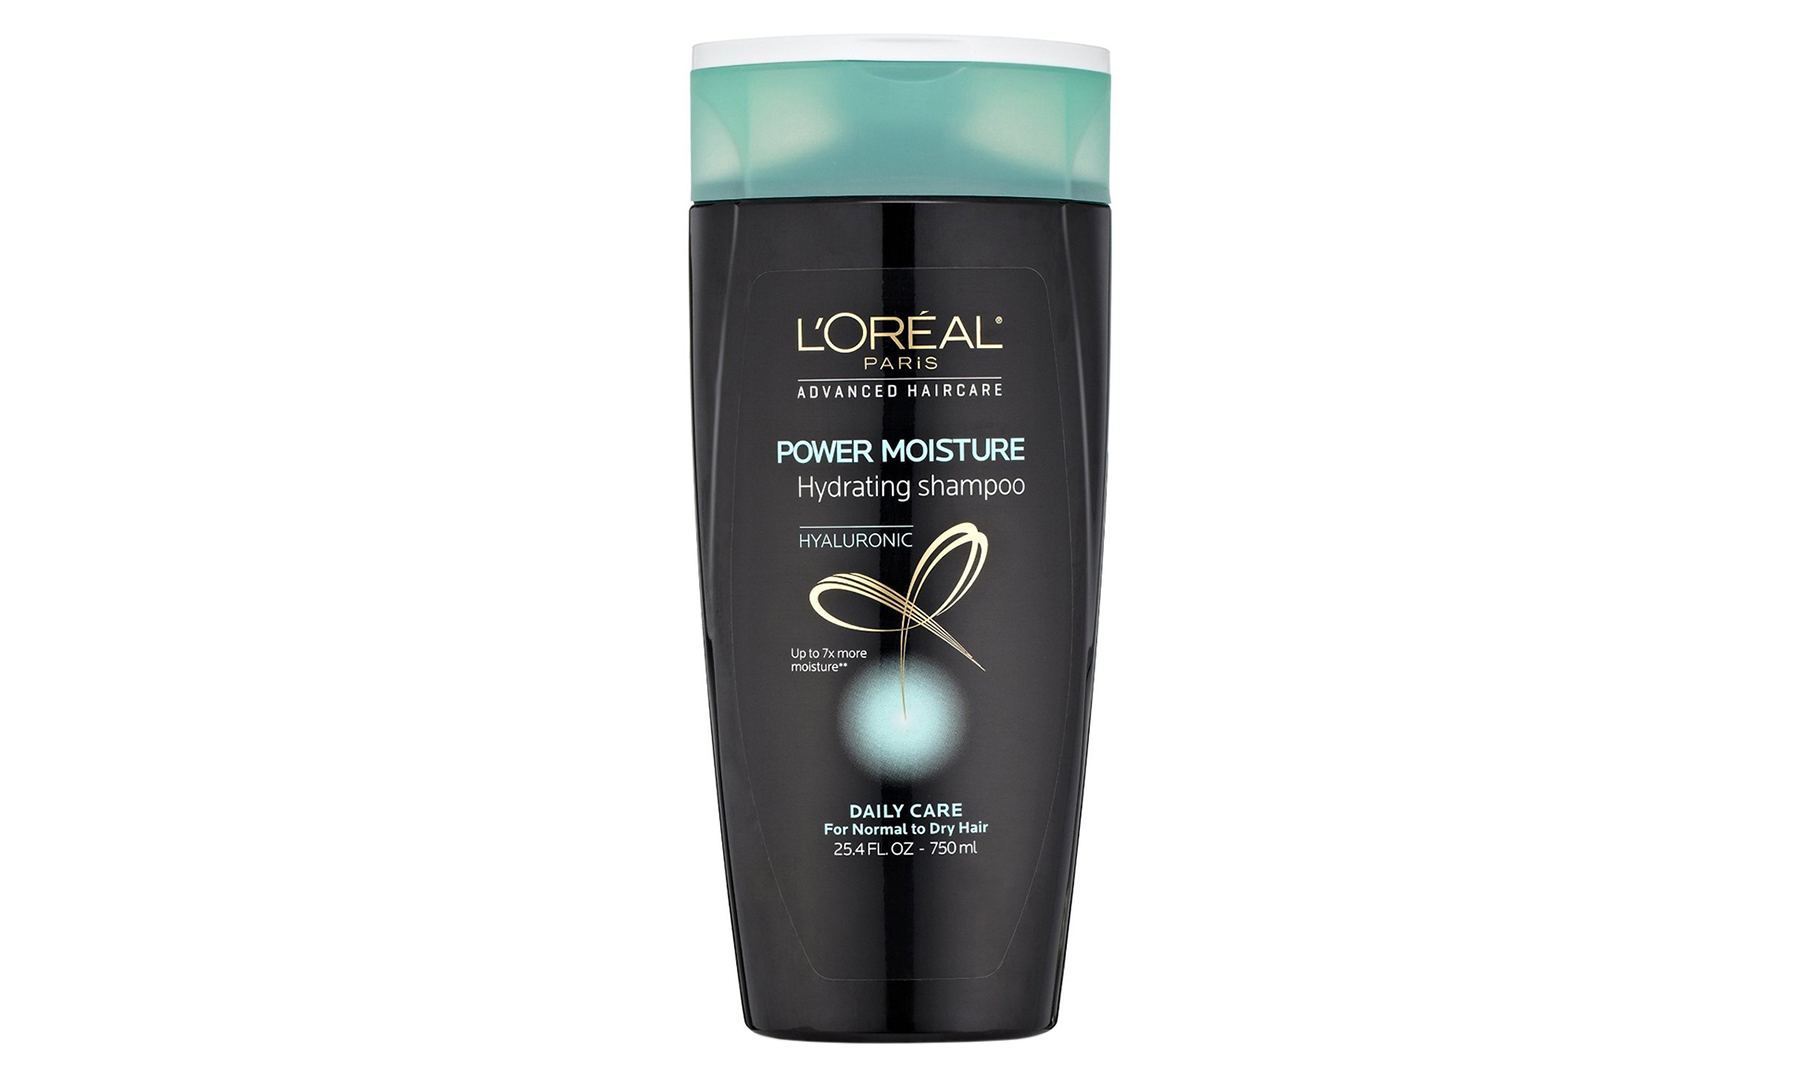 L'Oréal Paris Advanced Haircare Power Moisture Shampoo